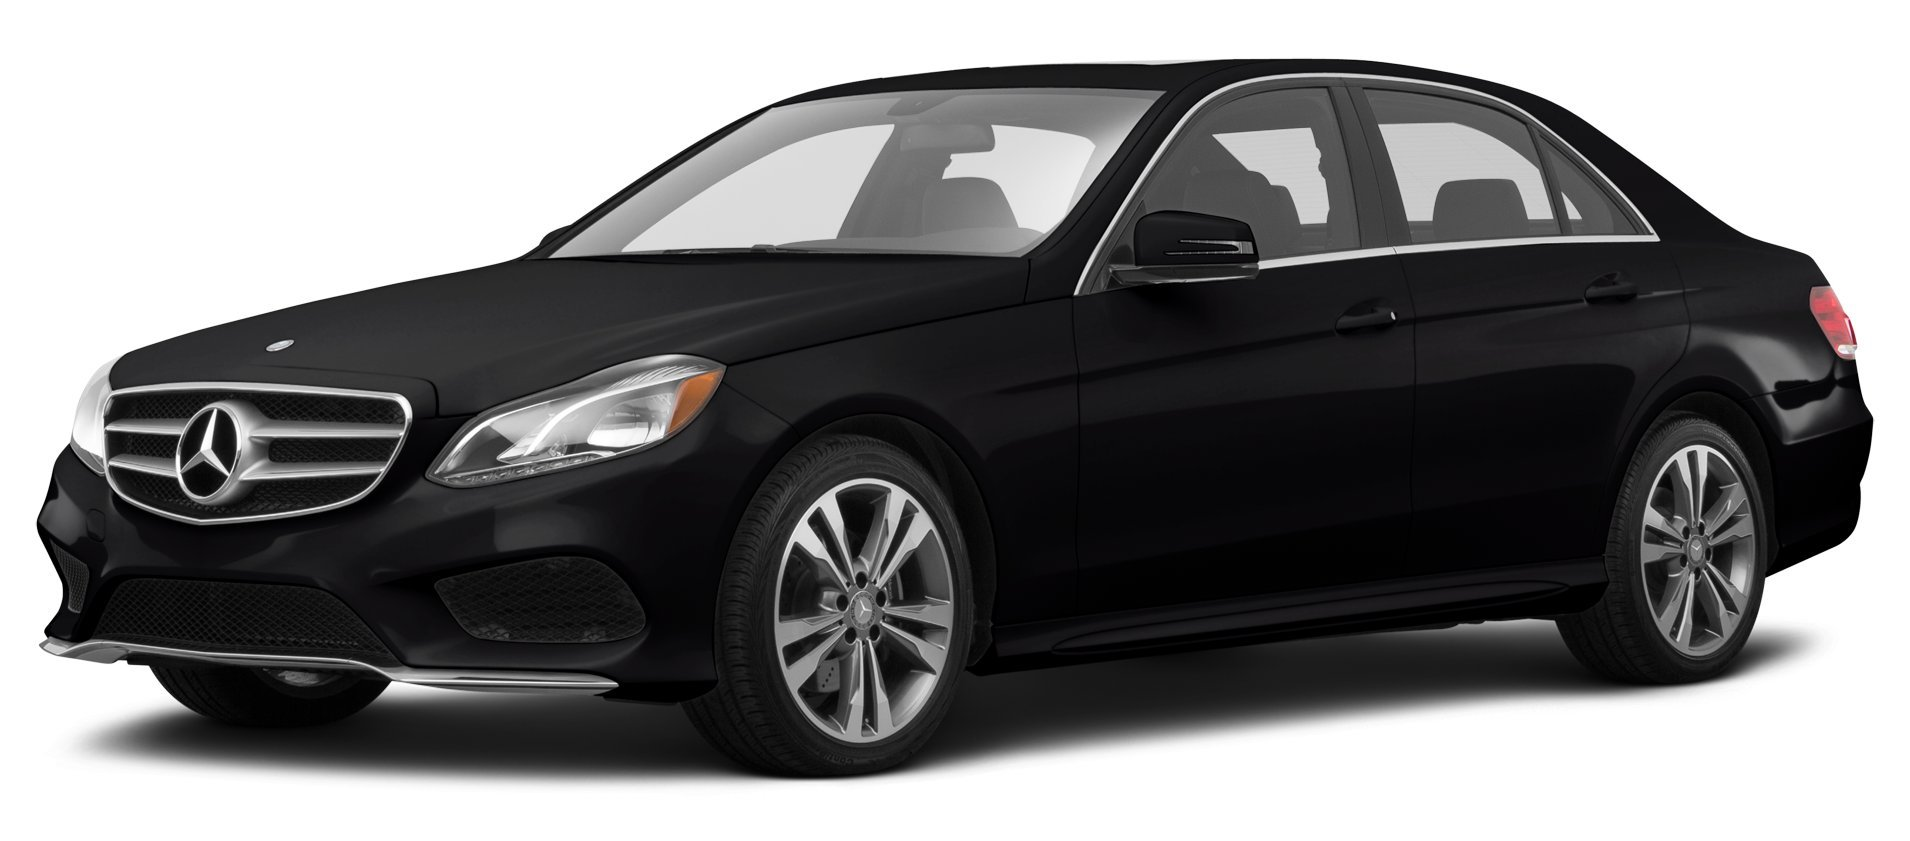 2016 mercedes benz e350 reviews images and